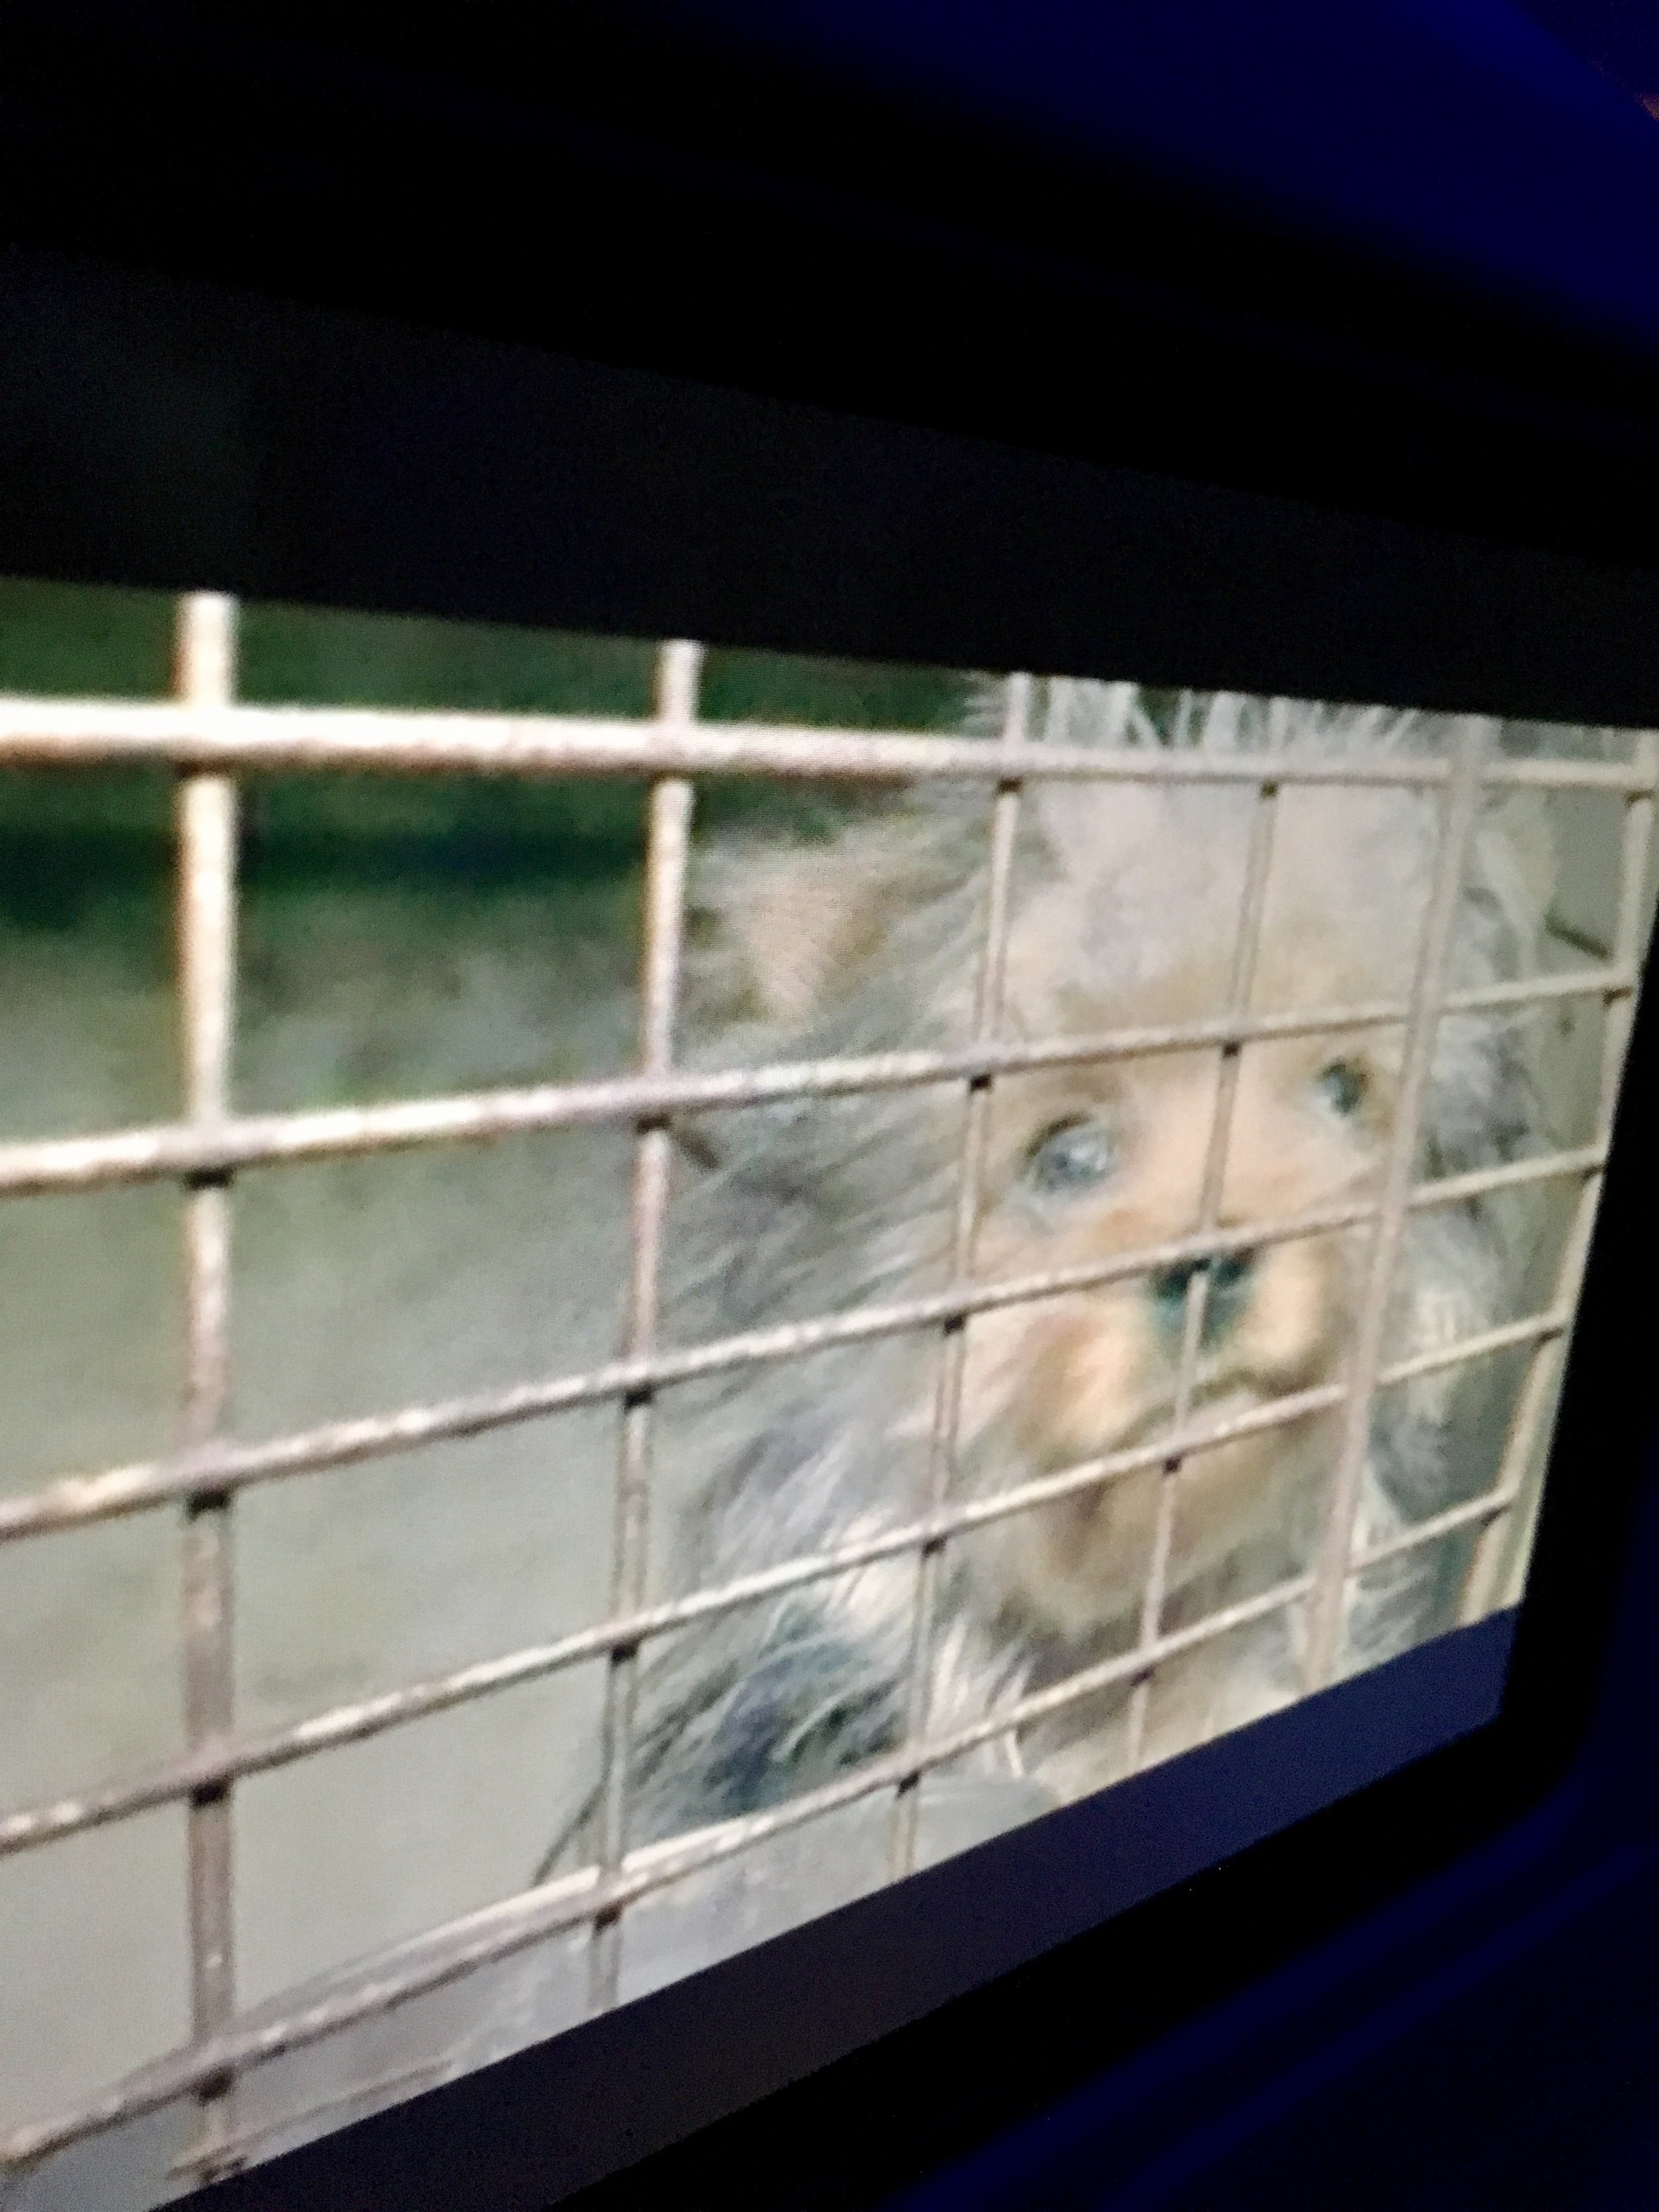 We did get satellite TV on our flight, but they had these really sad animal rescue commercials with Sarah McLachlan in the background. Was this a TV screen or a mirror? Sorry, little guy. We felt trapped, too.